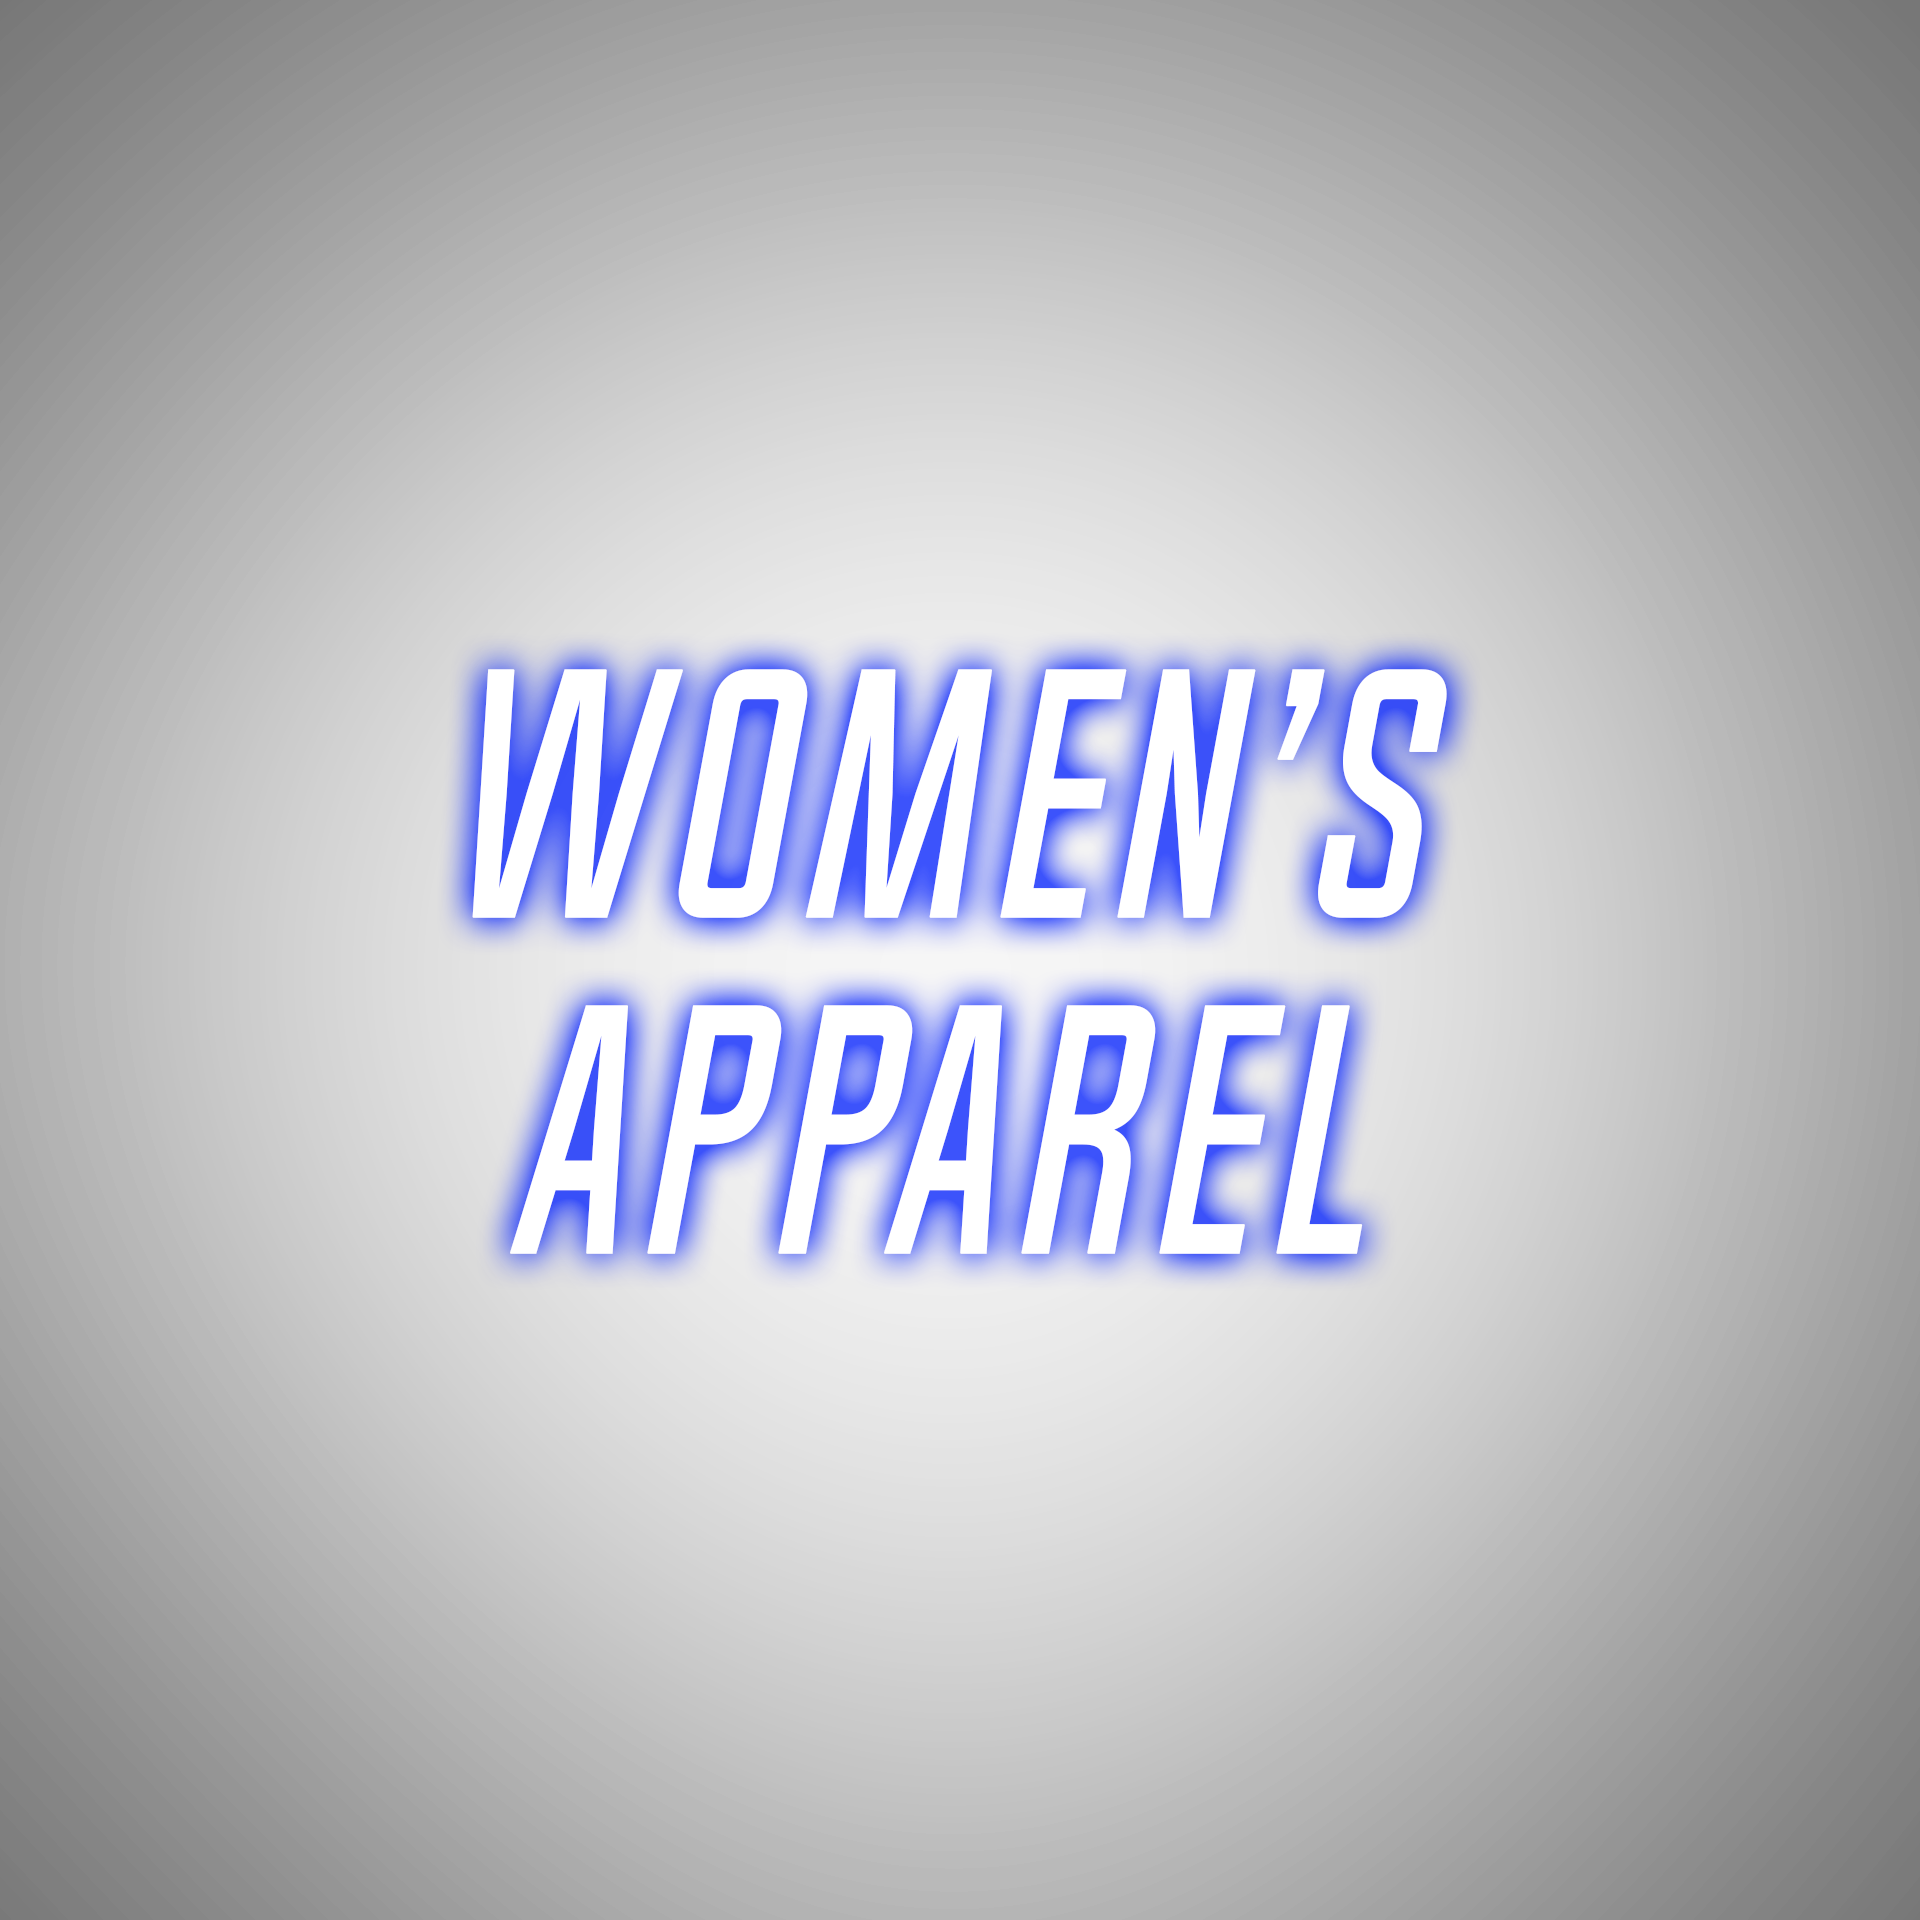 Women's_Apparel.png